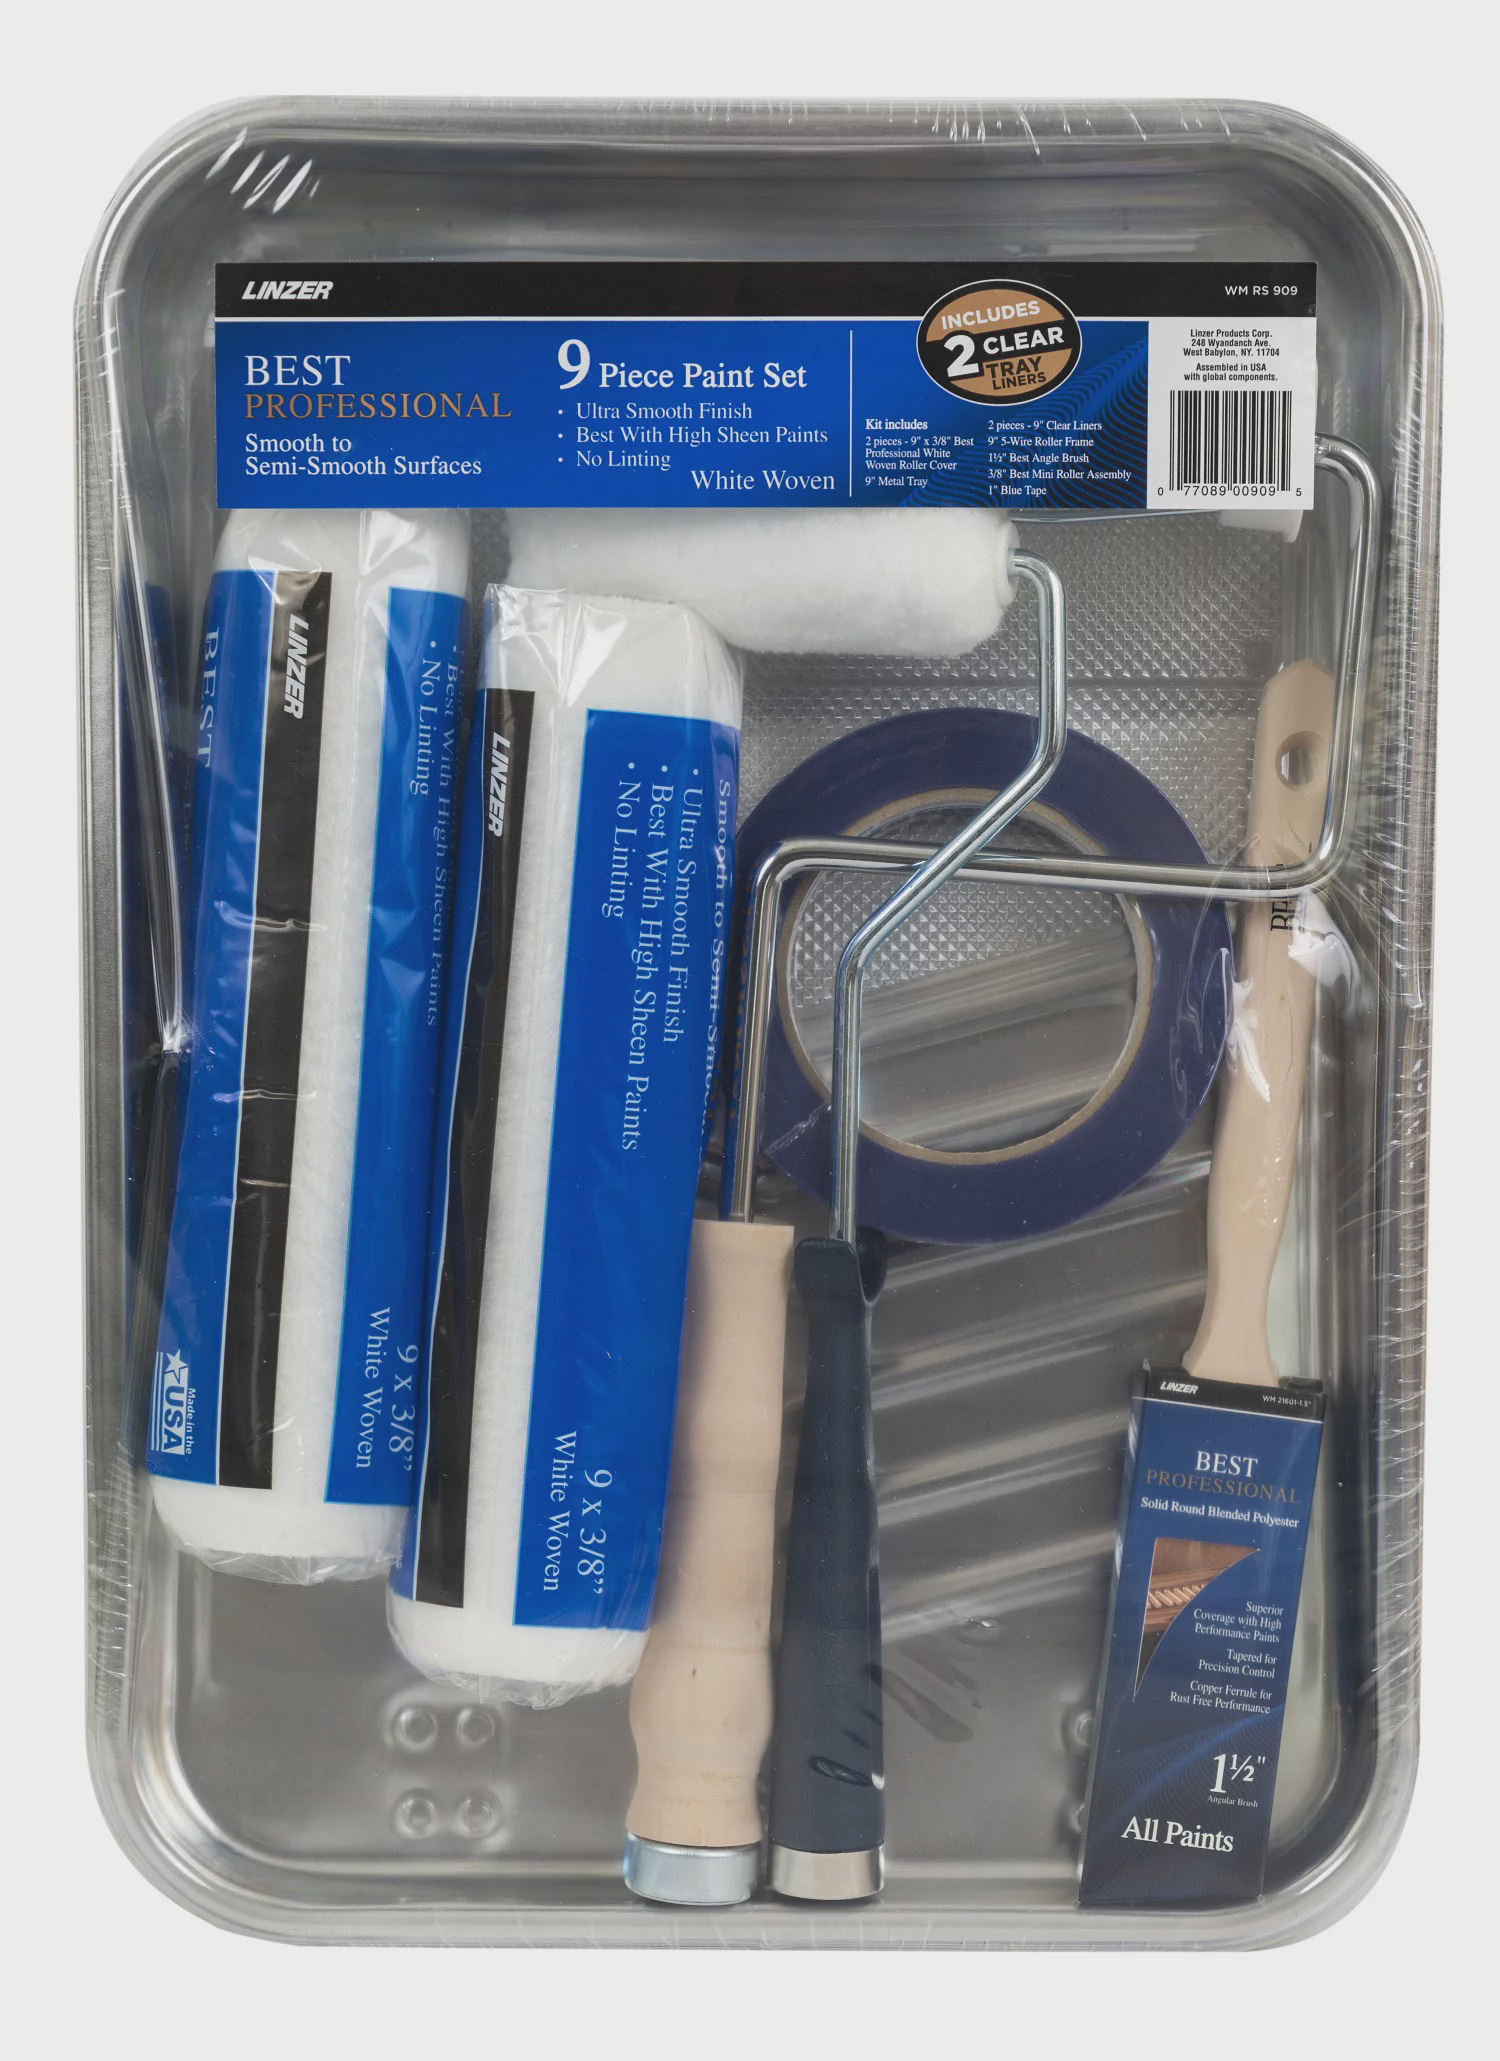 Paint a Room 9 Piece Wall Painting Set Paint Roller Kit Home Paint Supplies